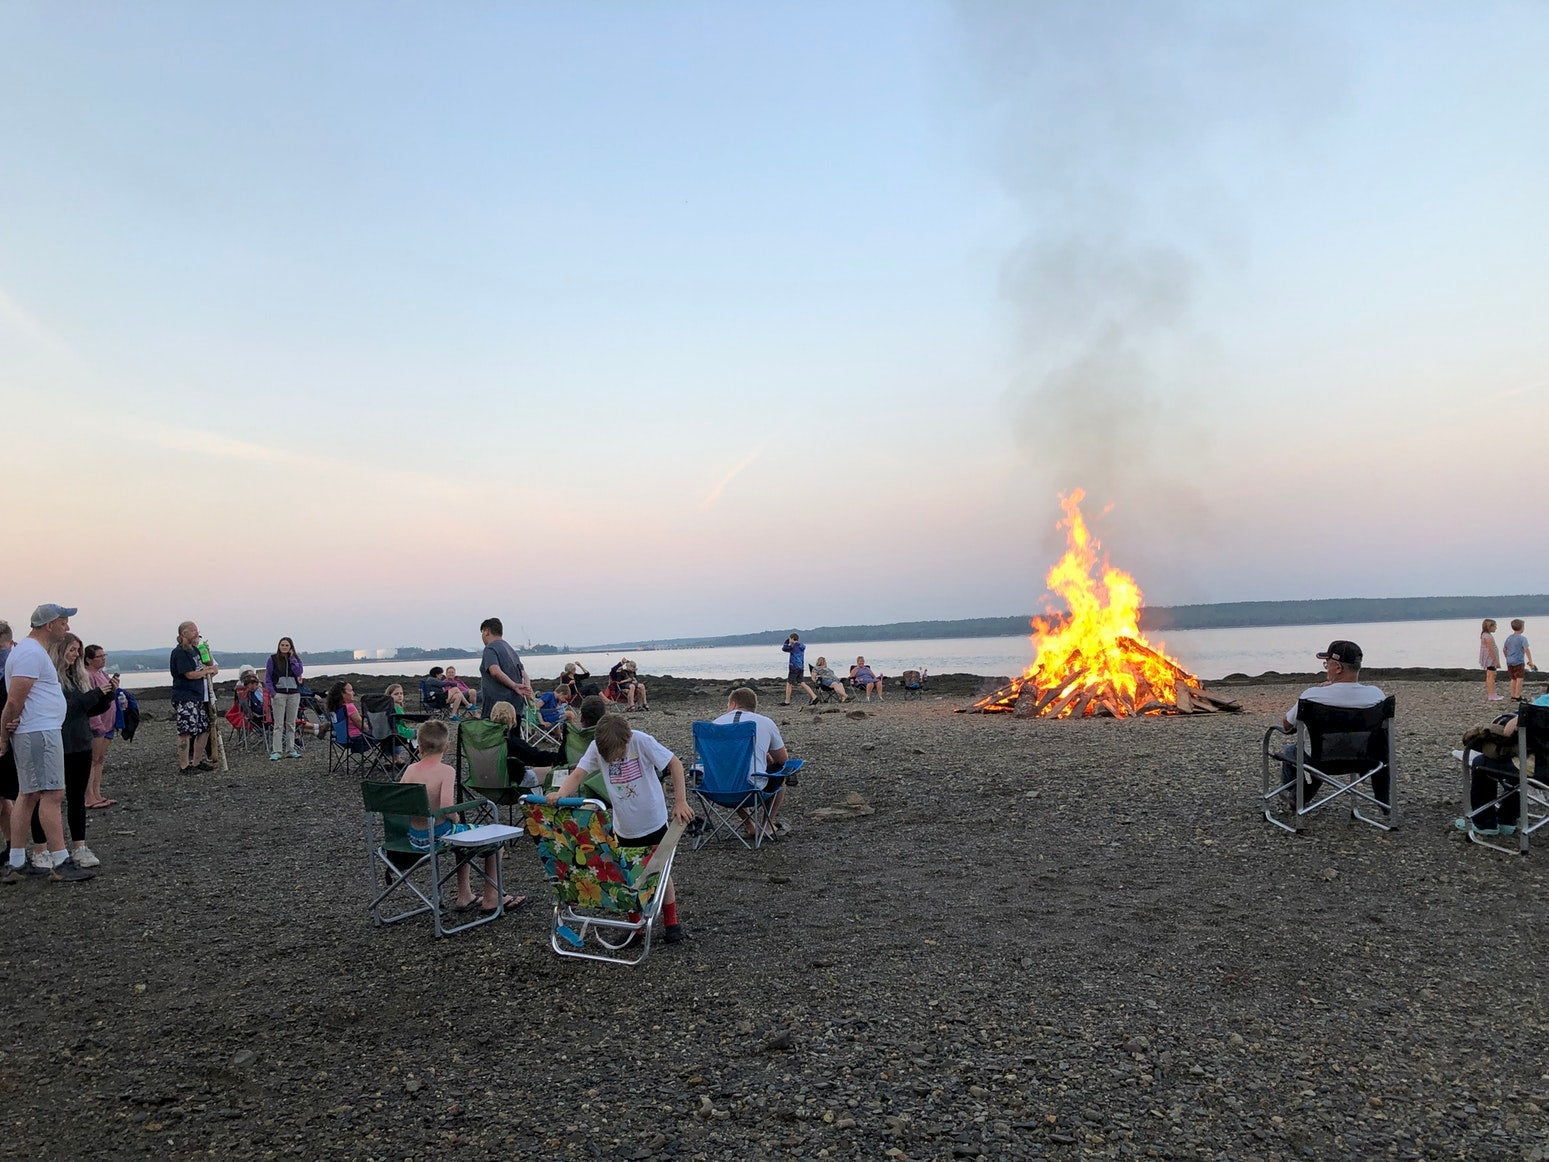 Beach bonfire surrounded by campers in beach chairs.